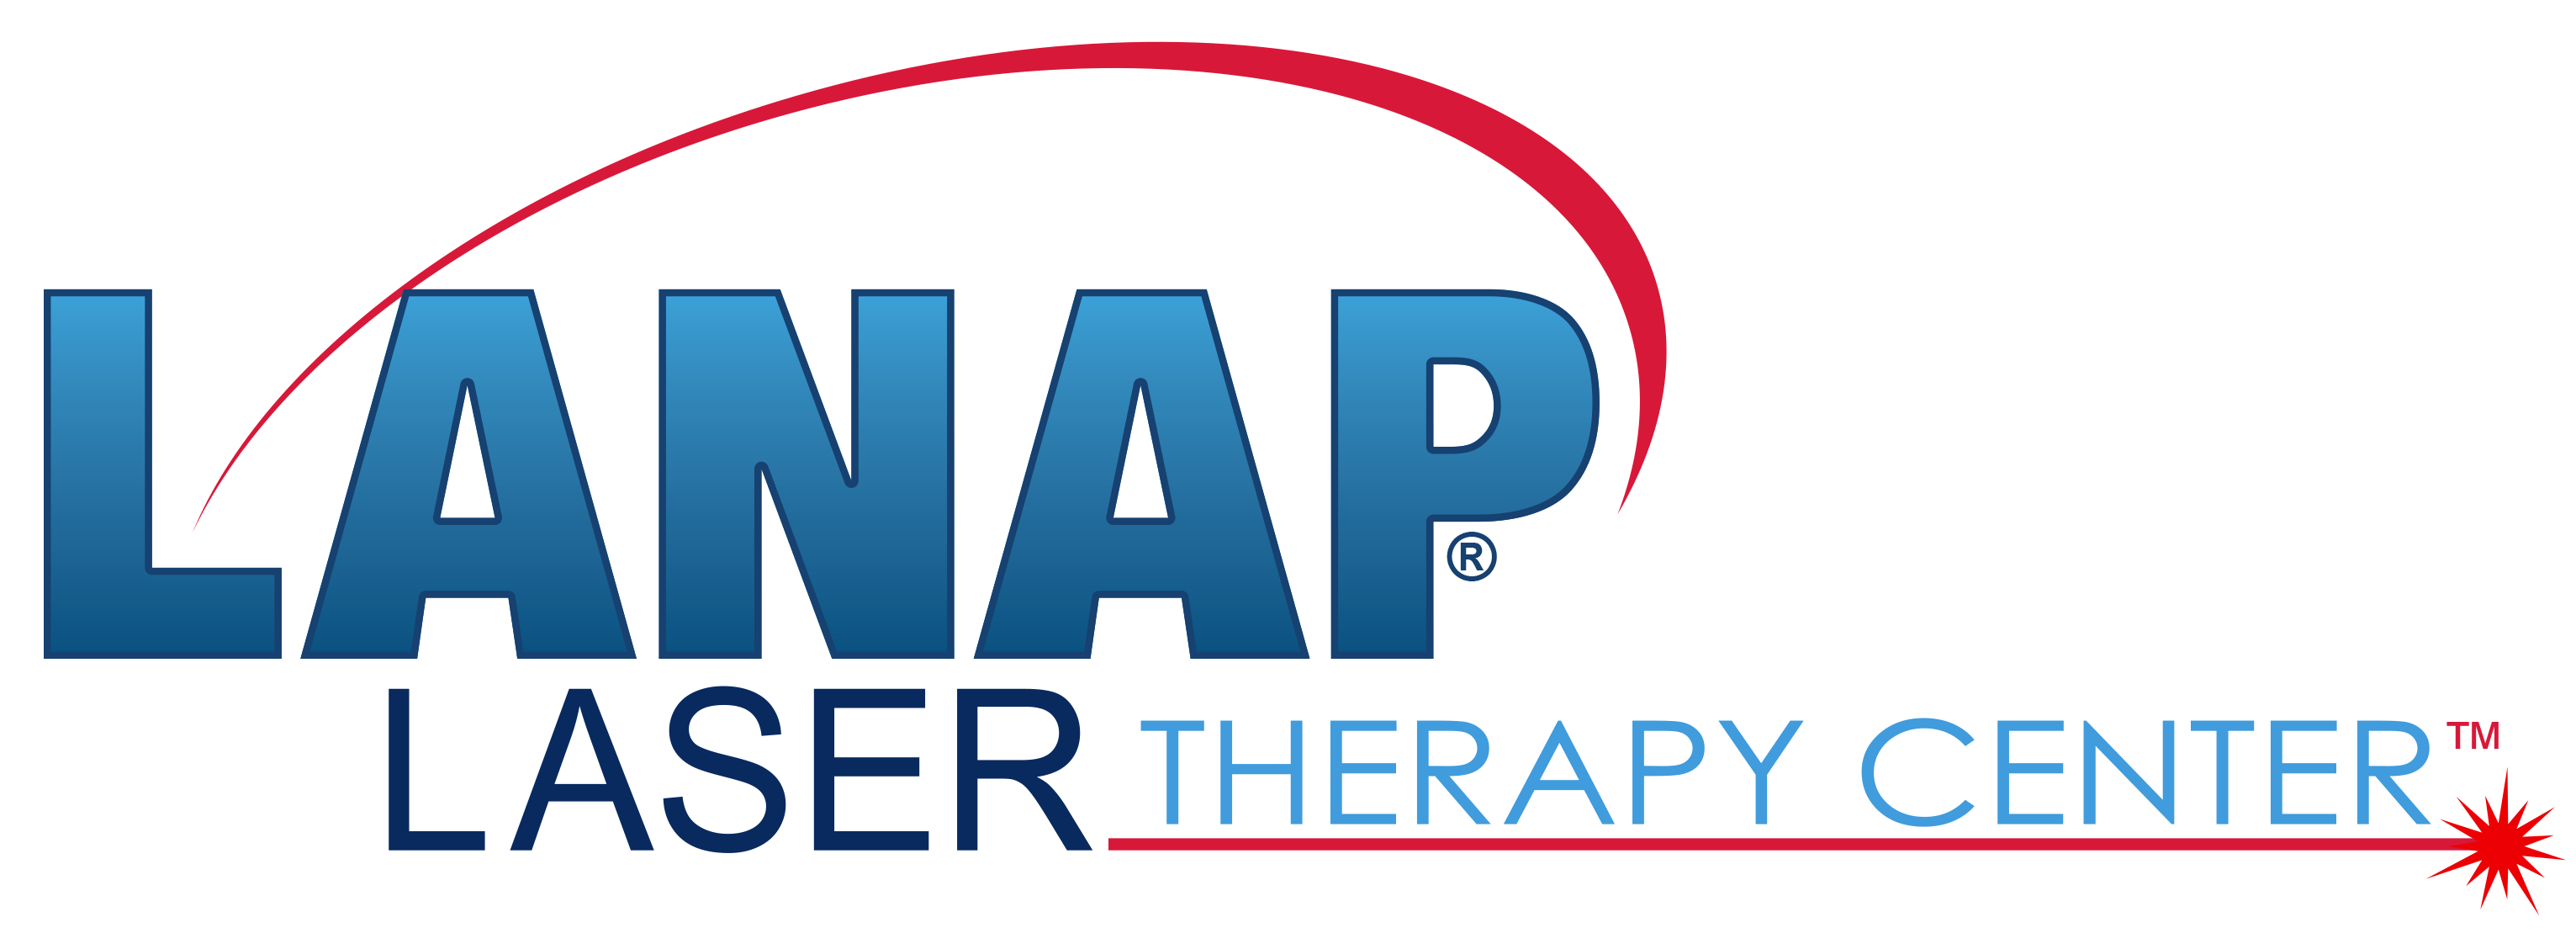 Lanap laser therapy